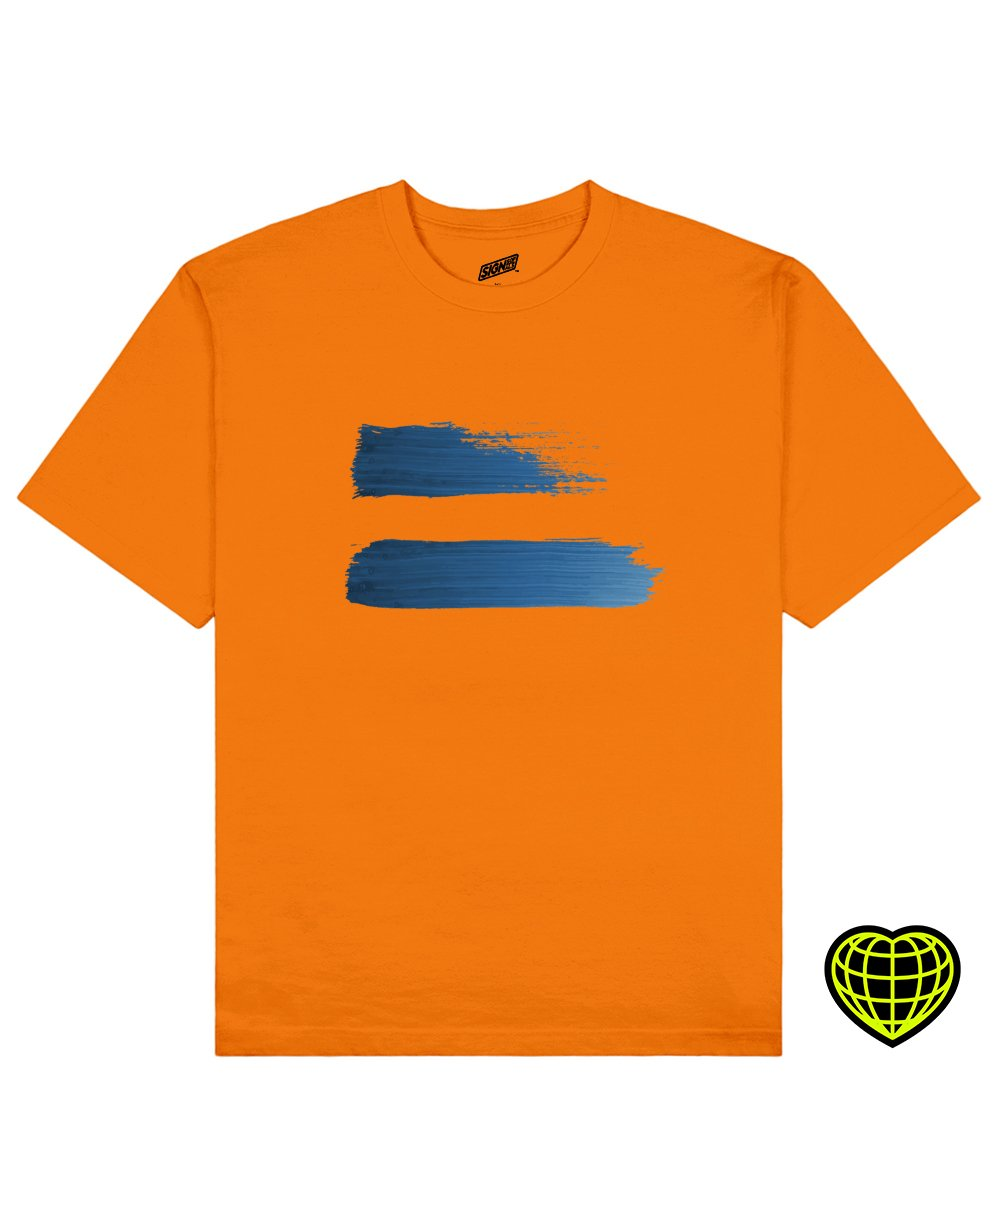 Fading away Print T-shirt in Orange - T-Shirts - Signs of Signals - BRANMA